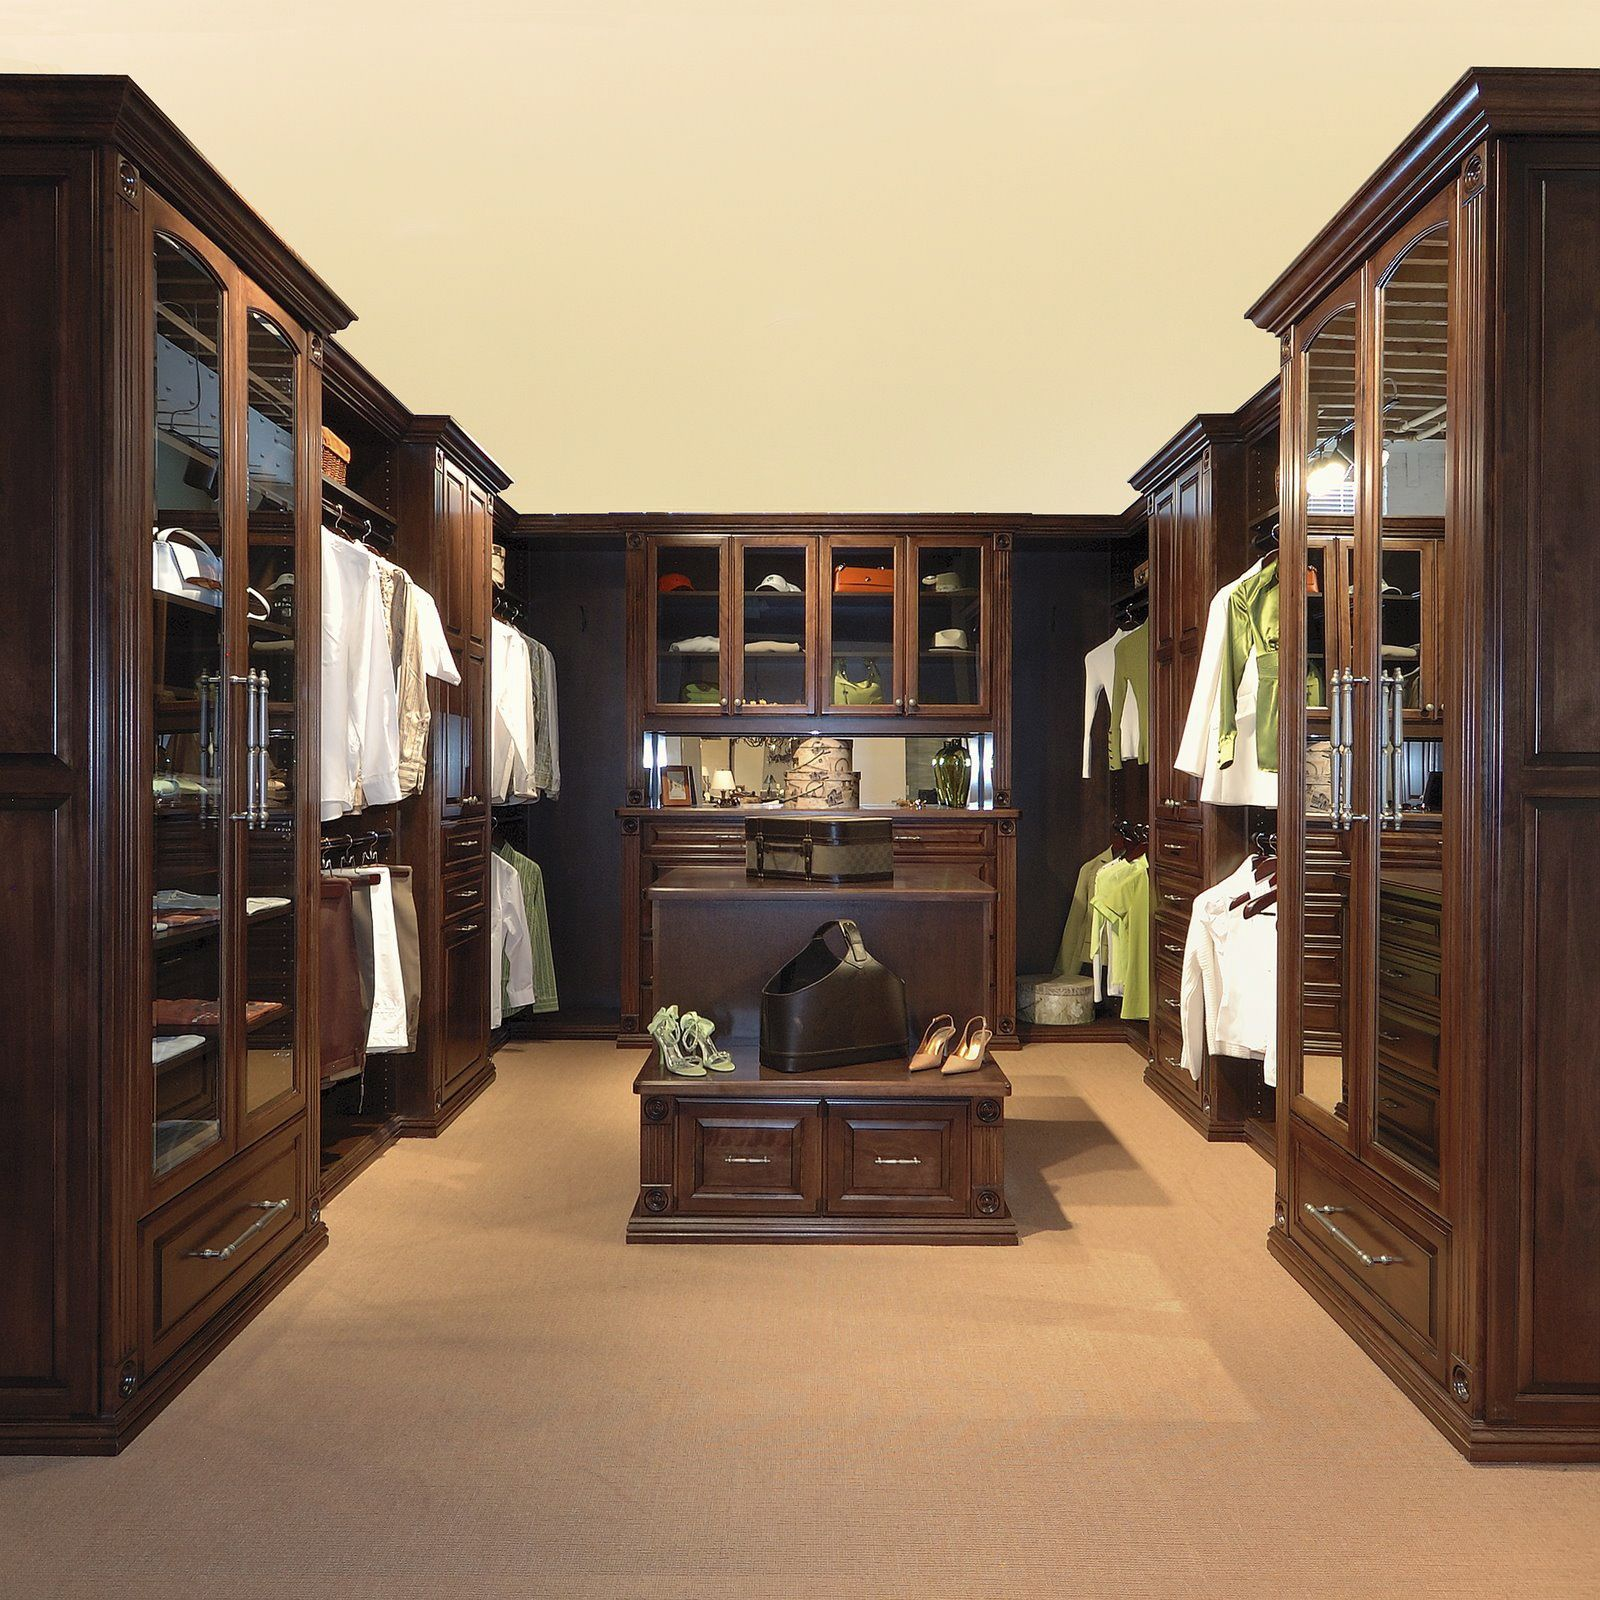 Charming Custom Closet Designs | Malka In The Closet: CUSTOM CLOSET WARDROBE